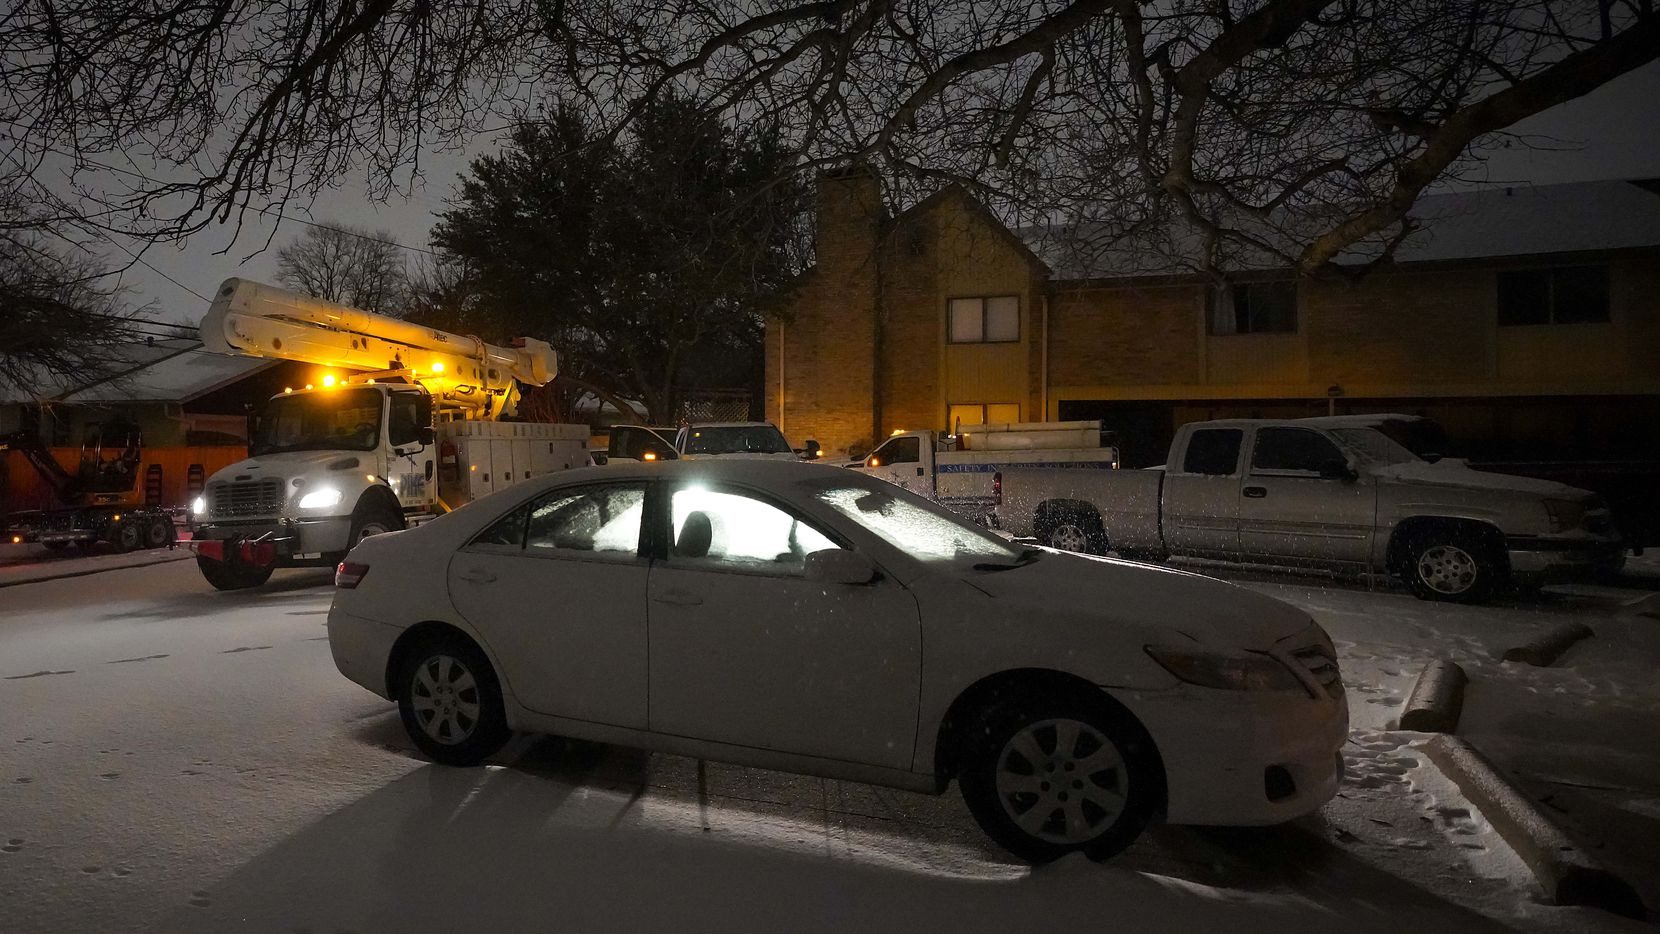 Power crews work in a darkened apartment complex after a second winter storm brought more snow and continued freezing temperatures, and continuing power outages, to North Texas on Feb. 16, 2021, in Richardson. (Smiley N. Pool/The Dallas Morning News)